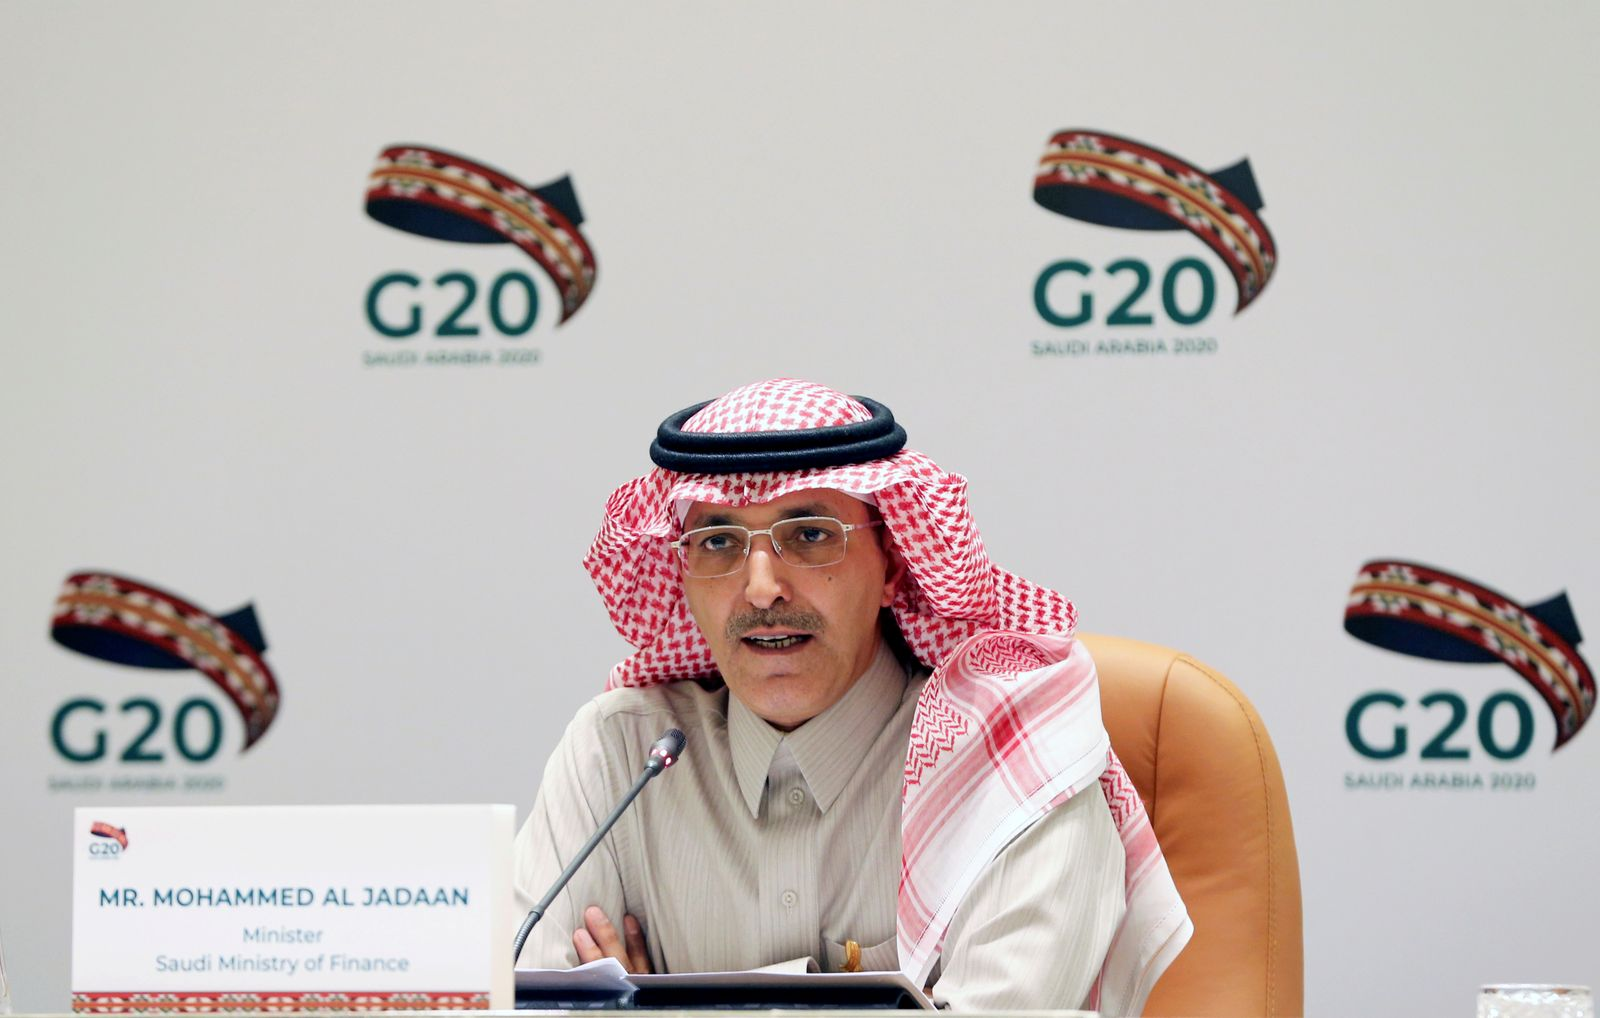 FILE PHOTO: Saudi Minister of Finance Mohammed al-Jadaan speaks during a media conference with Saudi Arabia's central bank governor Ahmed al-Kholifey, in Riyadh